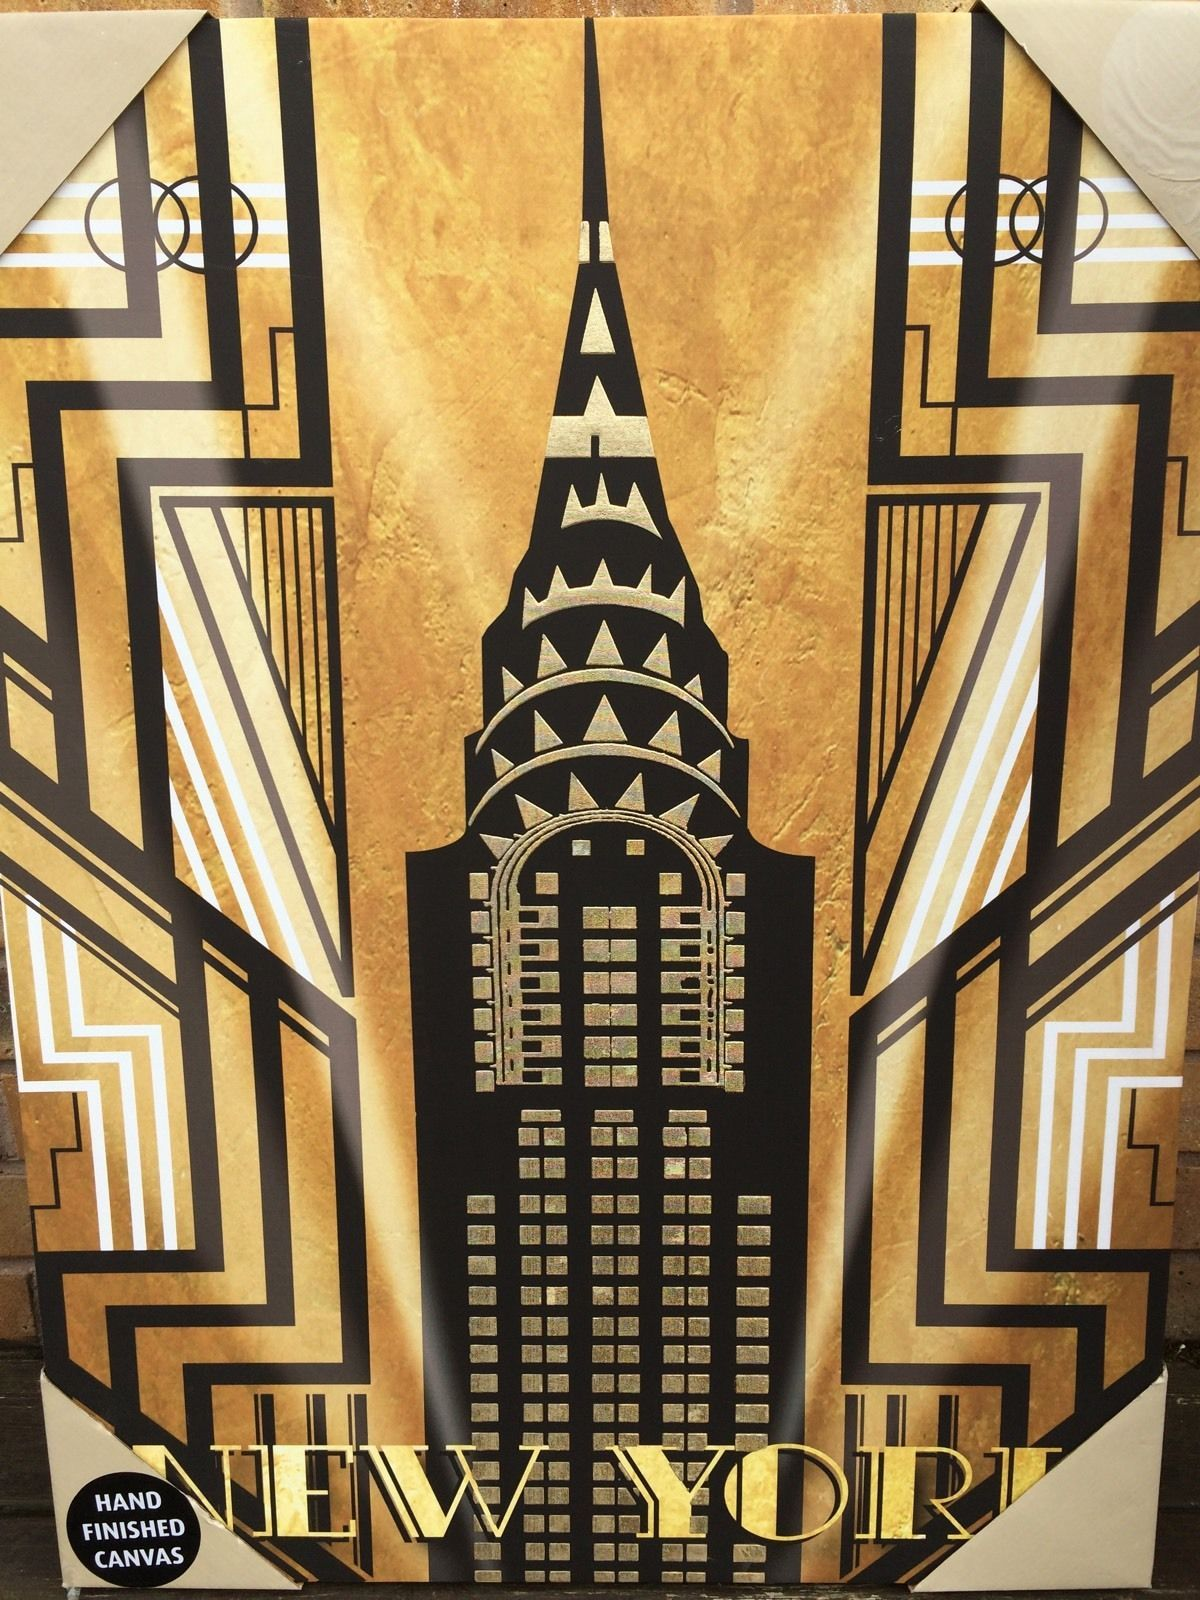 80x60 new york empire state canvas wall art deco gatsby. Black Bedroom Furniture Sets. Home Design Ideas